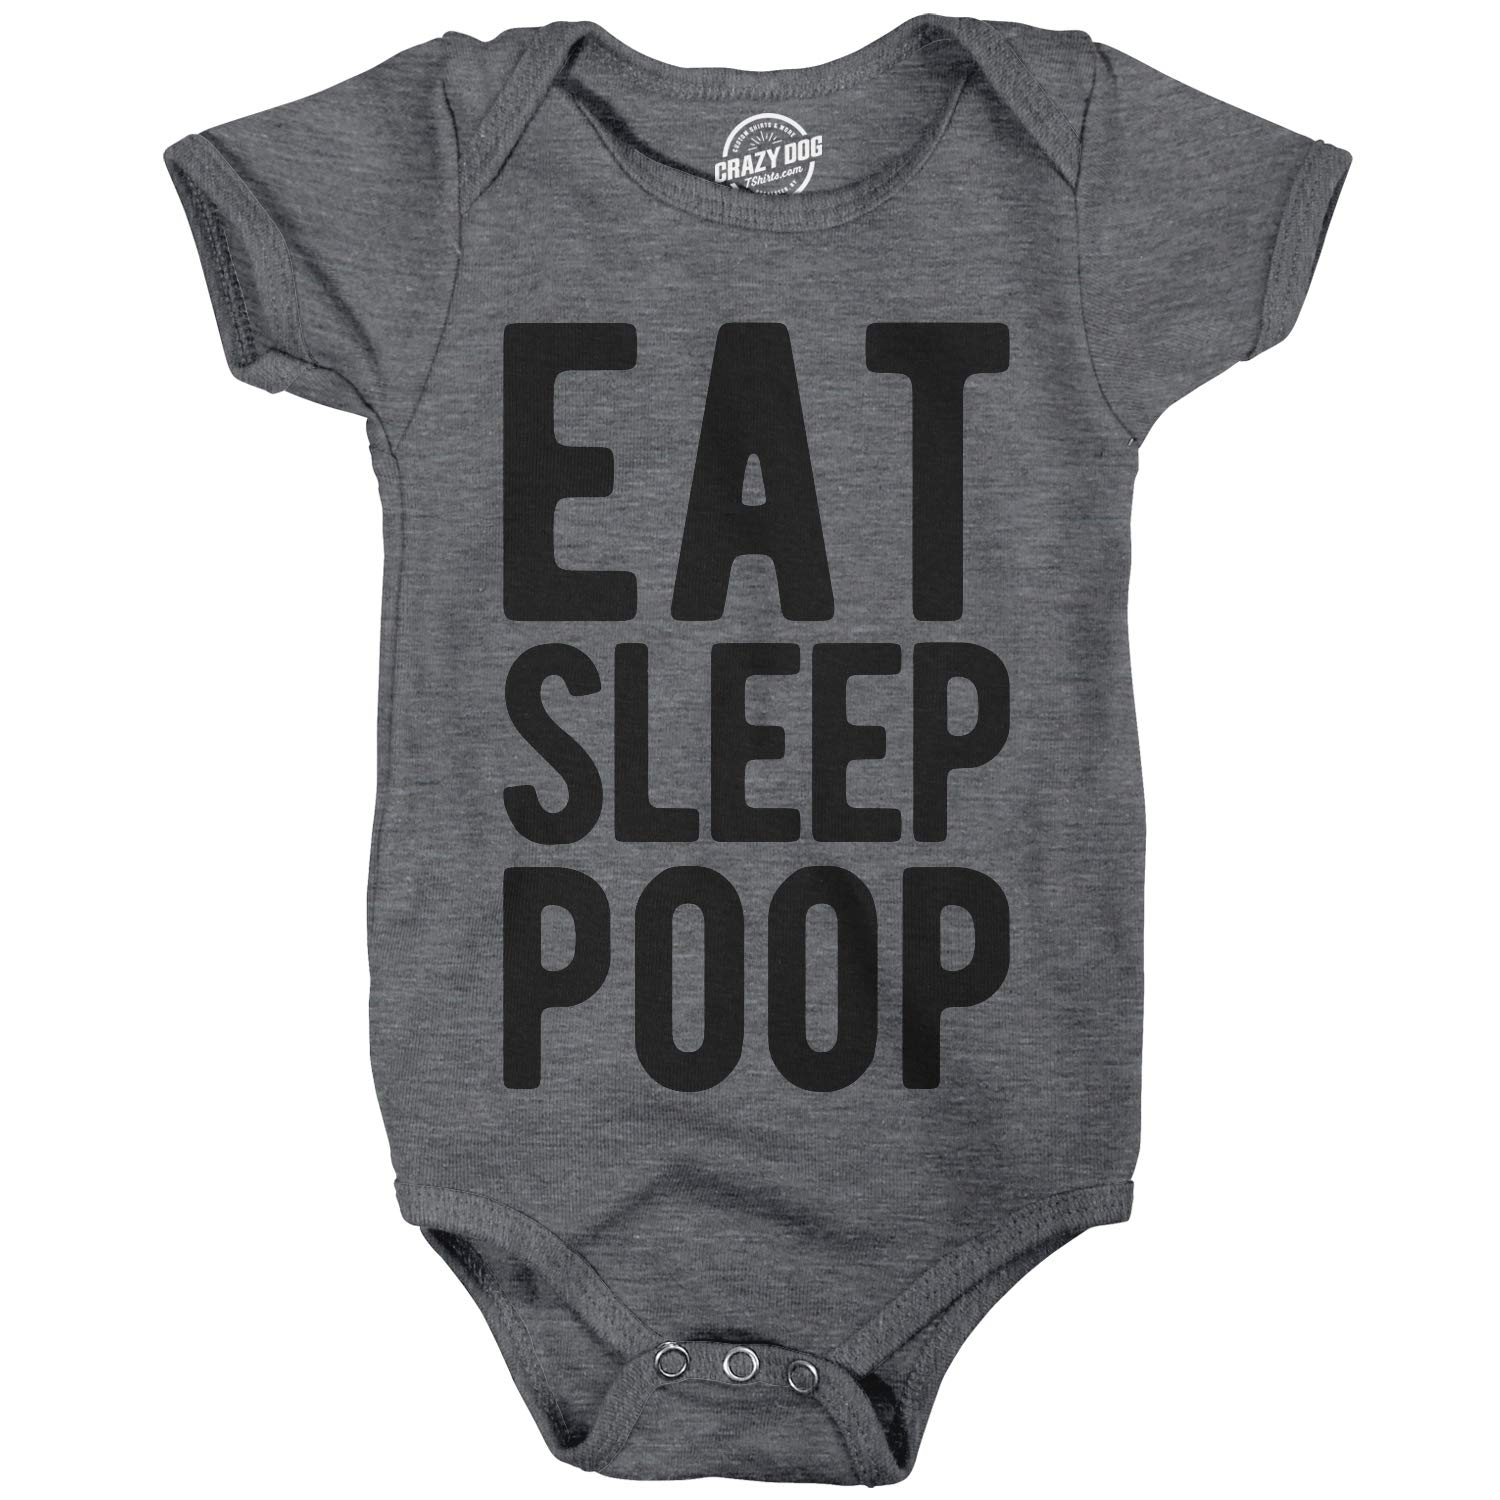 Crazy Dog Tshirts Pagliaccetto per Bambini Romper Eat Sleep Poop Funny Baby Clothes Cute Newborn Undershirt for Gift